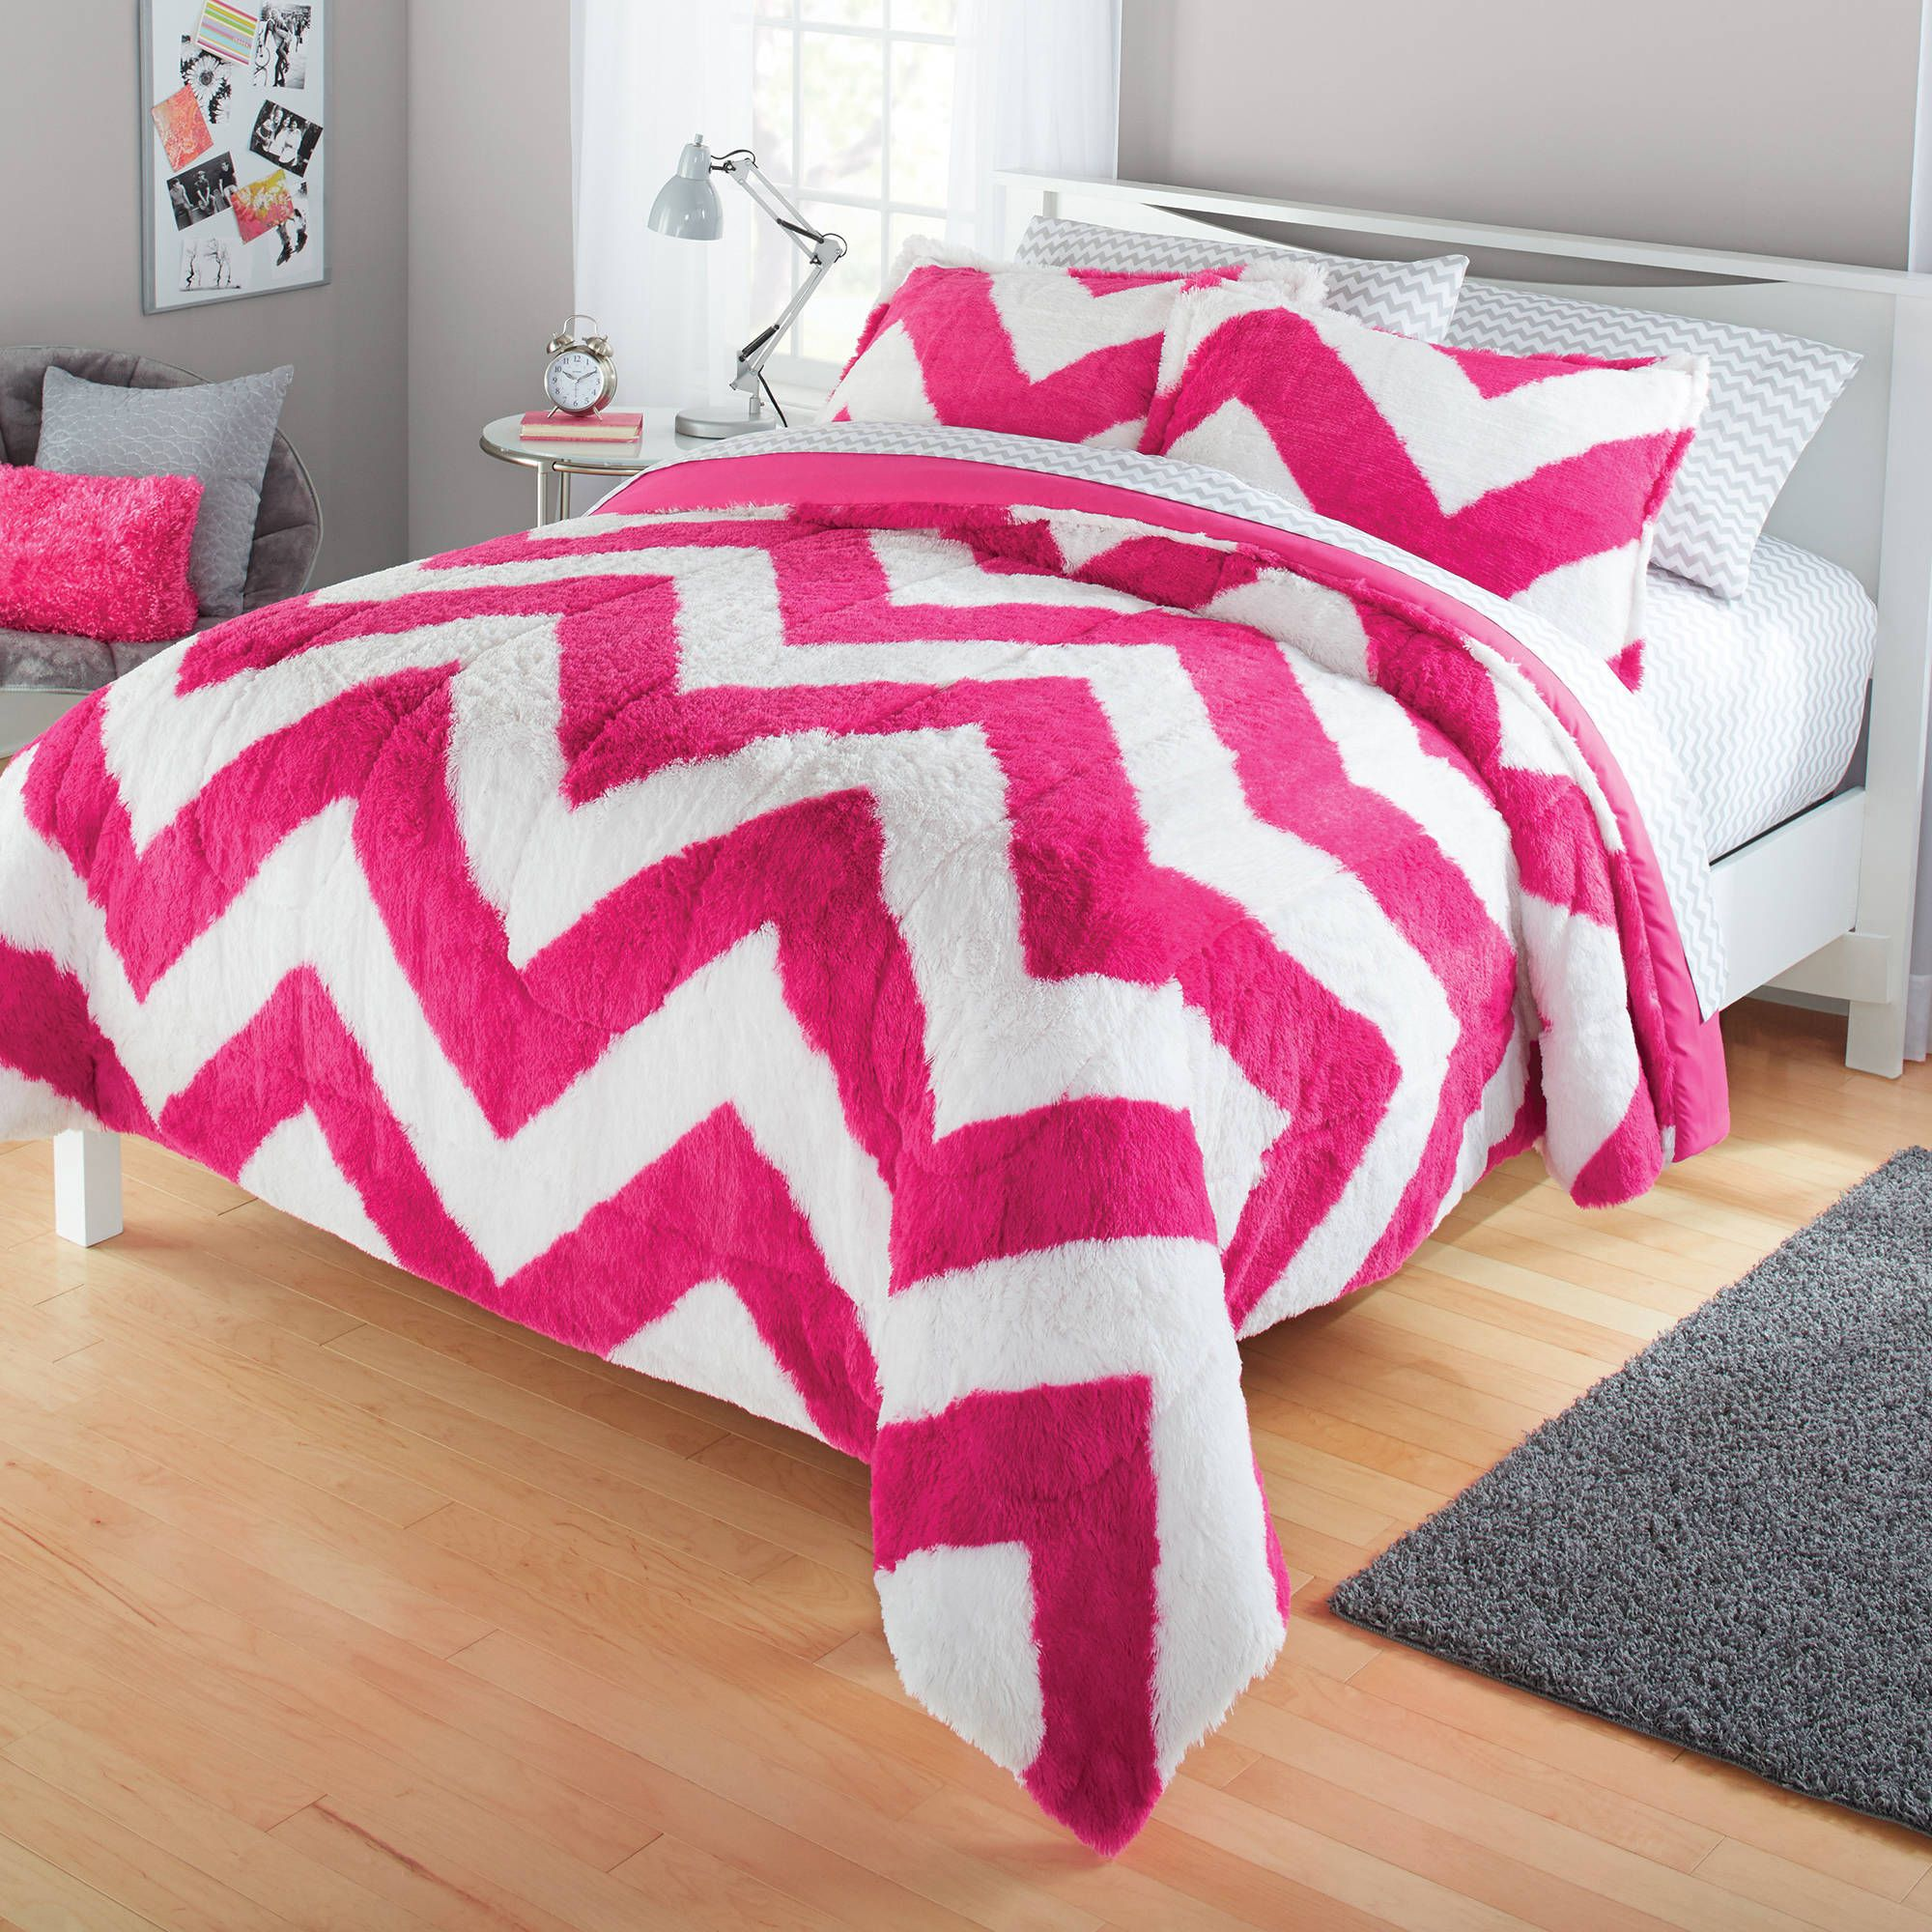 Search and Compare more Bedding Deals at http://extrabigfoot.com ...